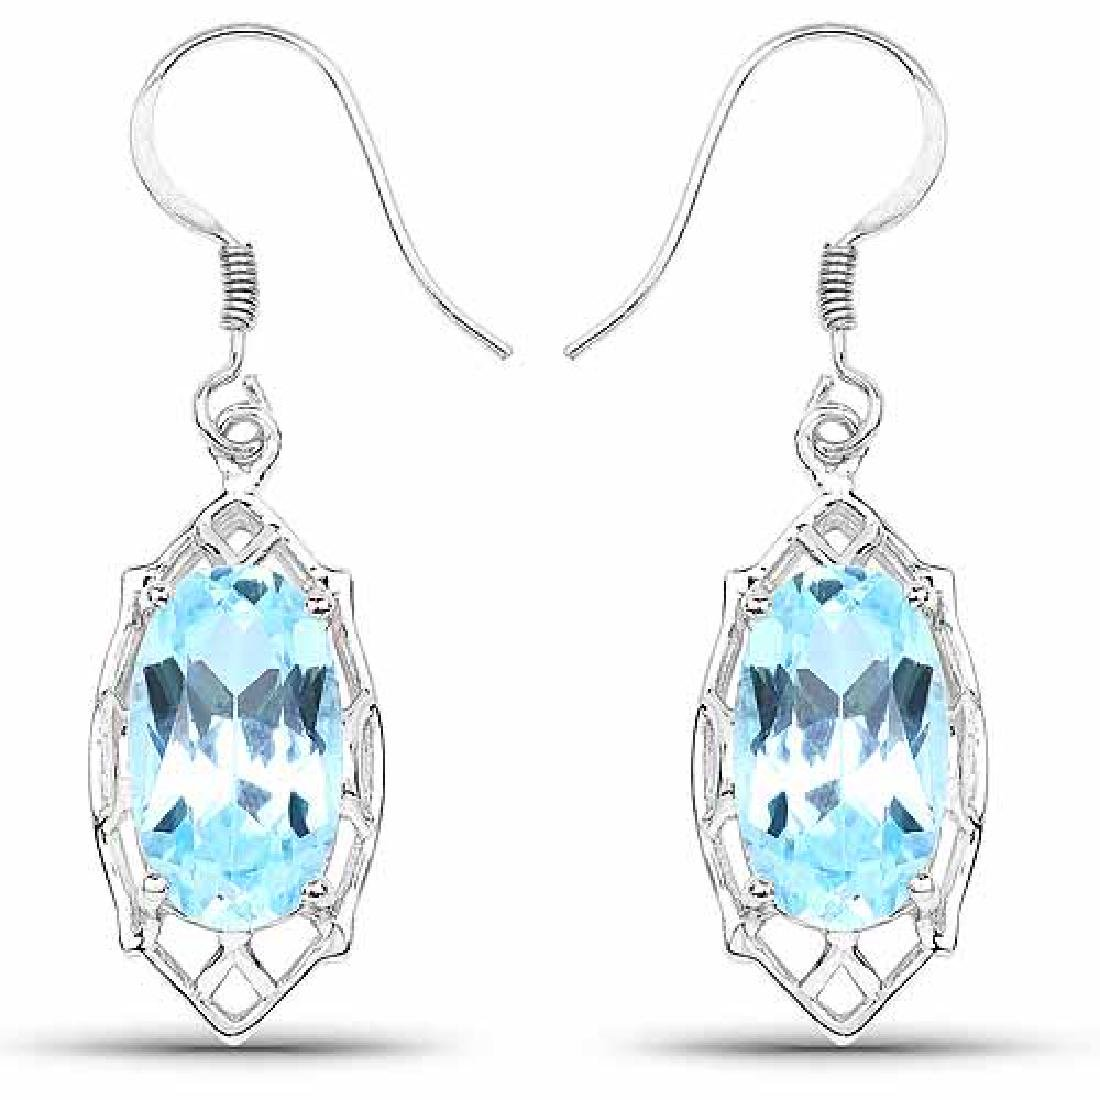 13.68 Carat Genuine Blue Topaz .925 Sterling Silver Ear